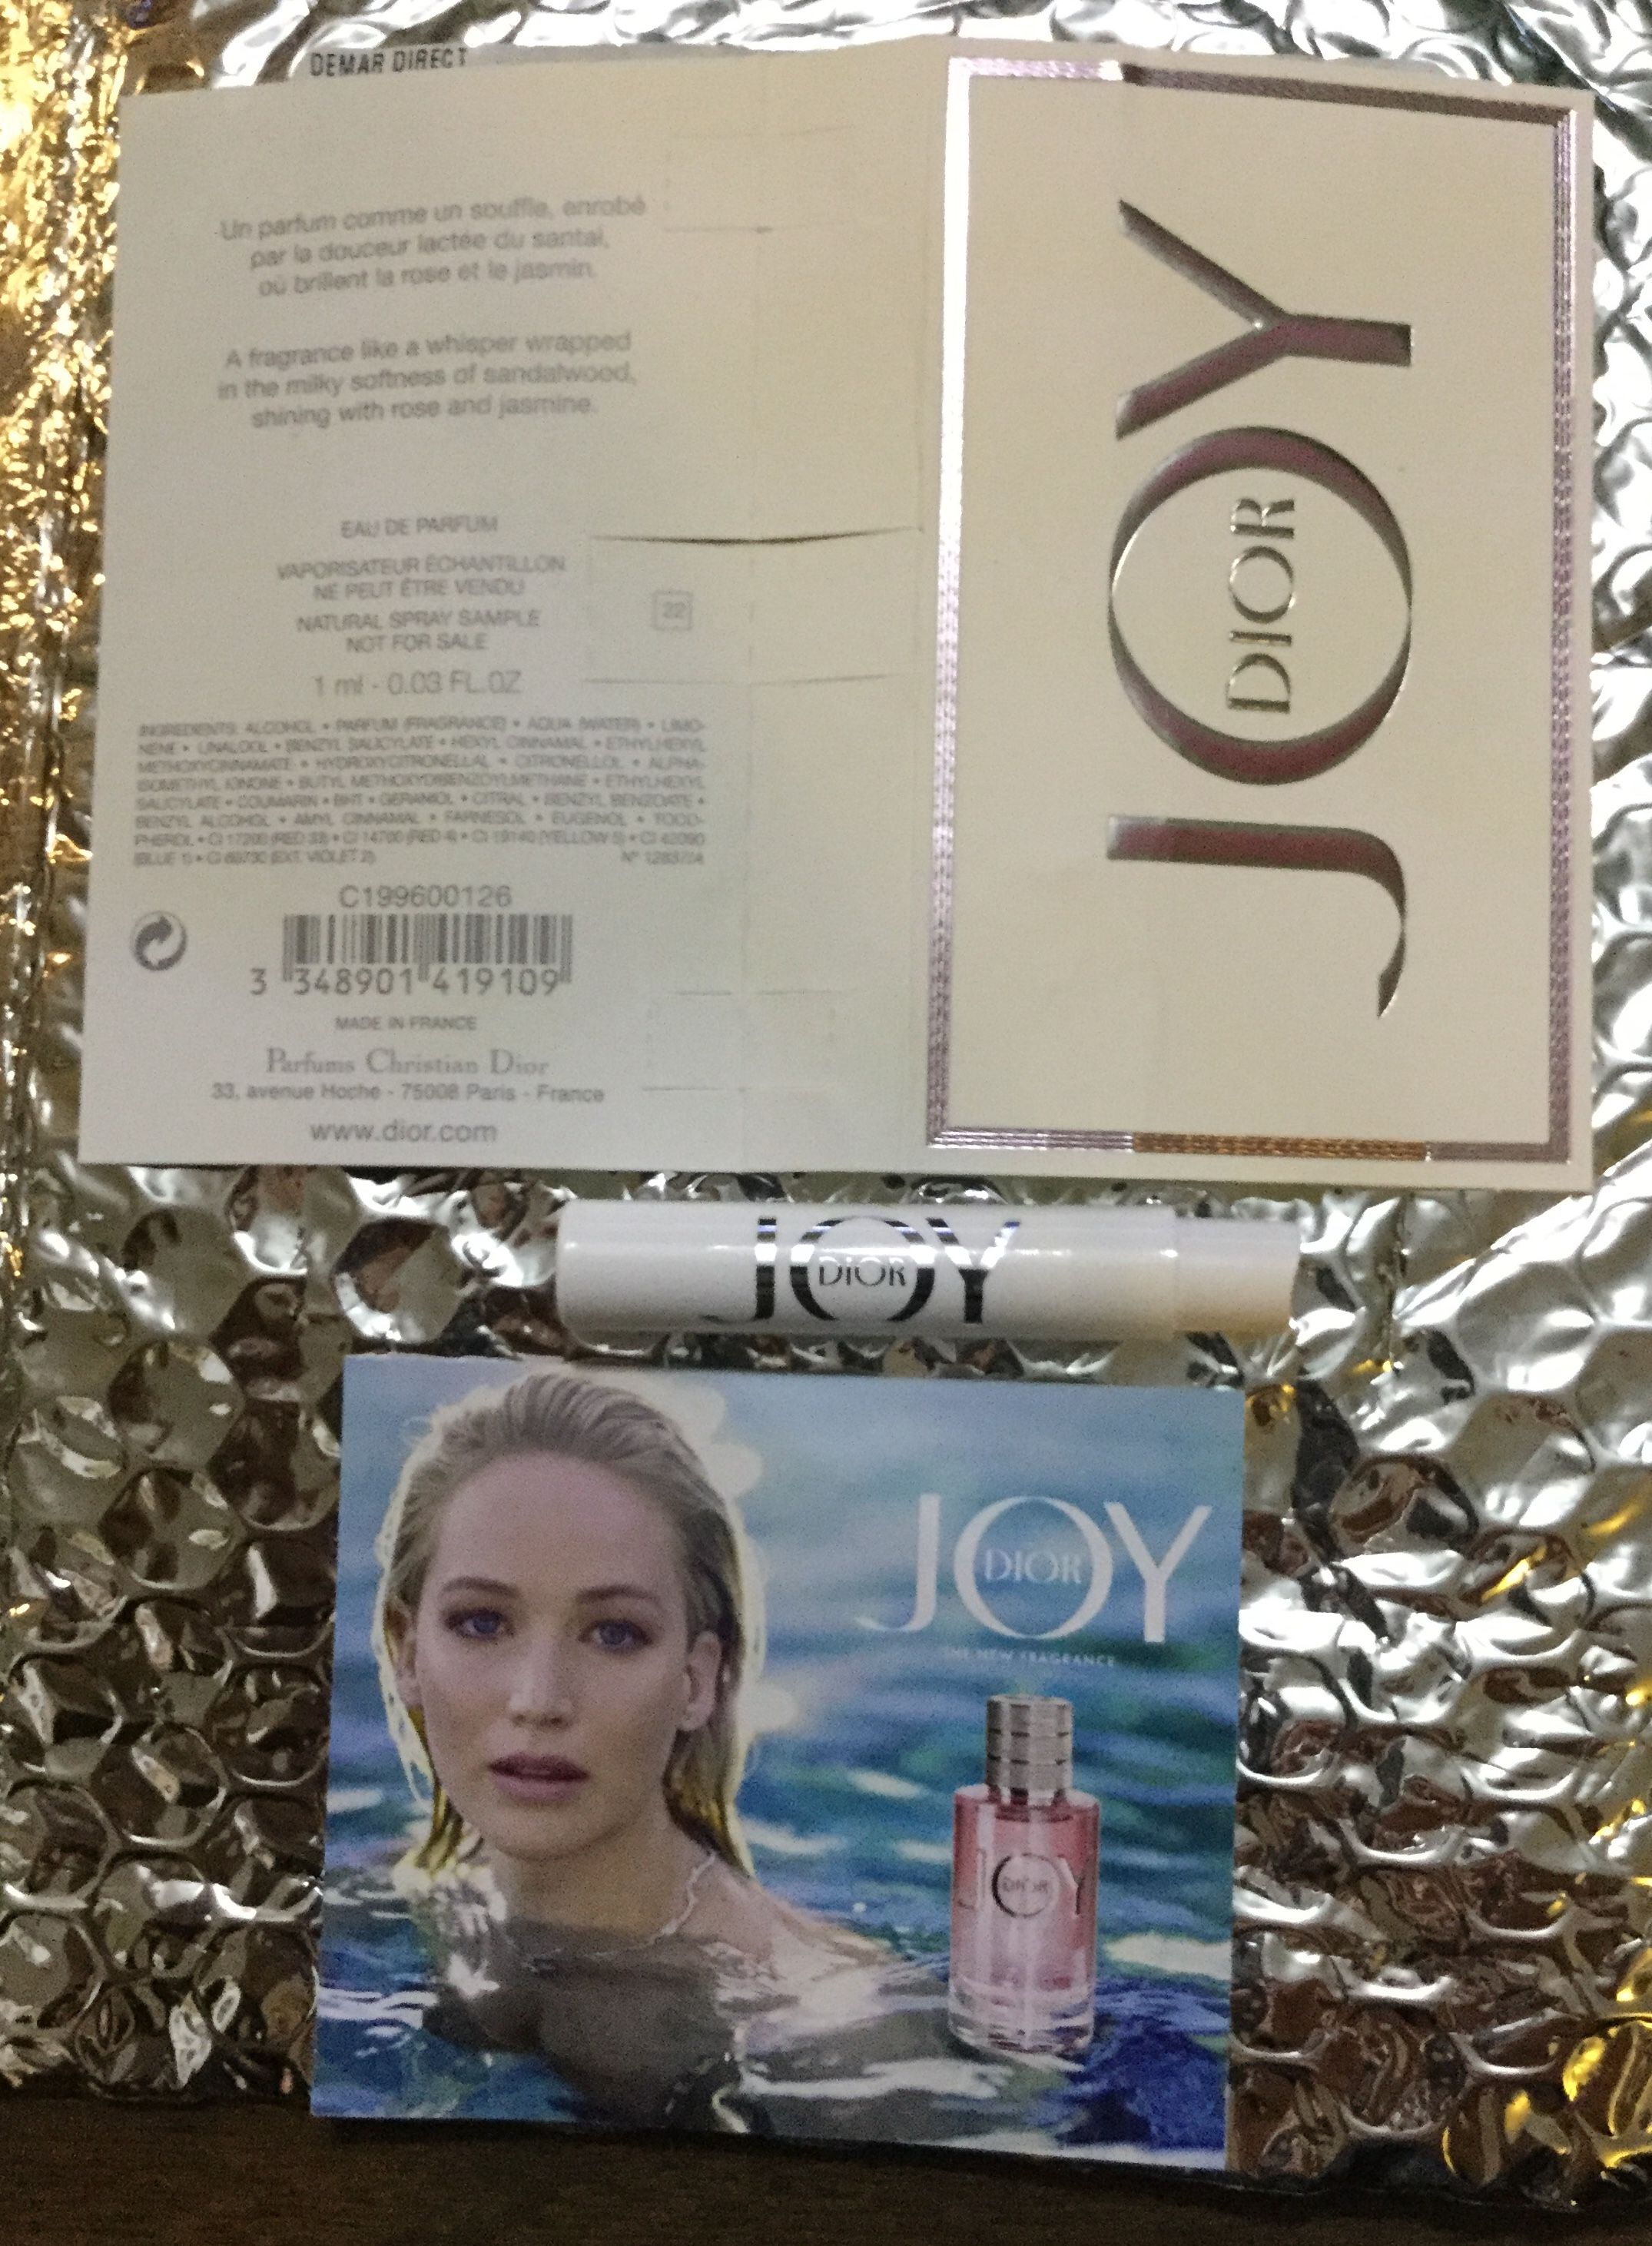 Free Joy By Dior Fragrance Sample Freestuff Freebies Samples